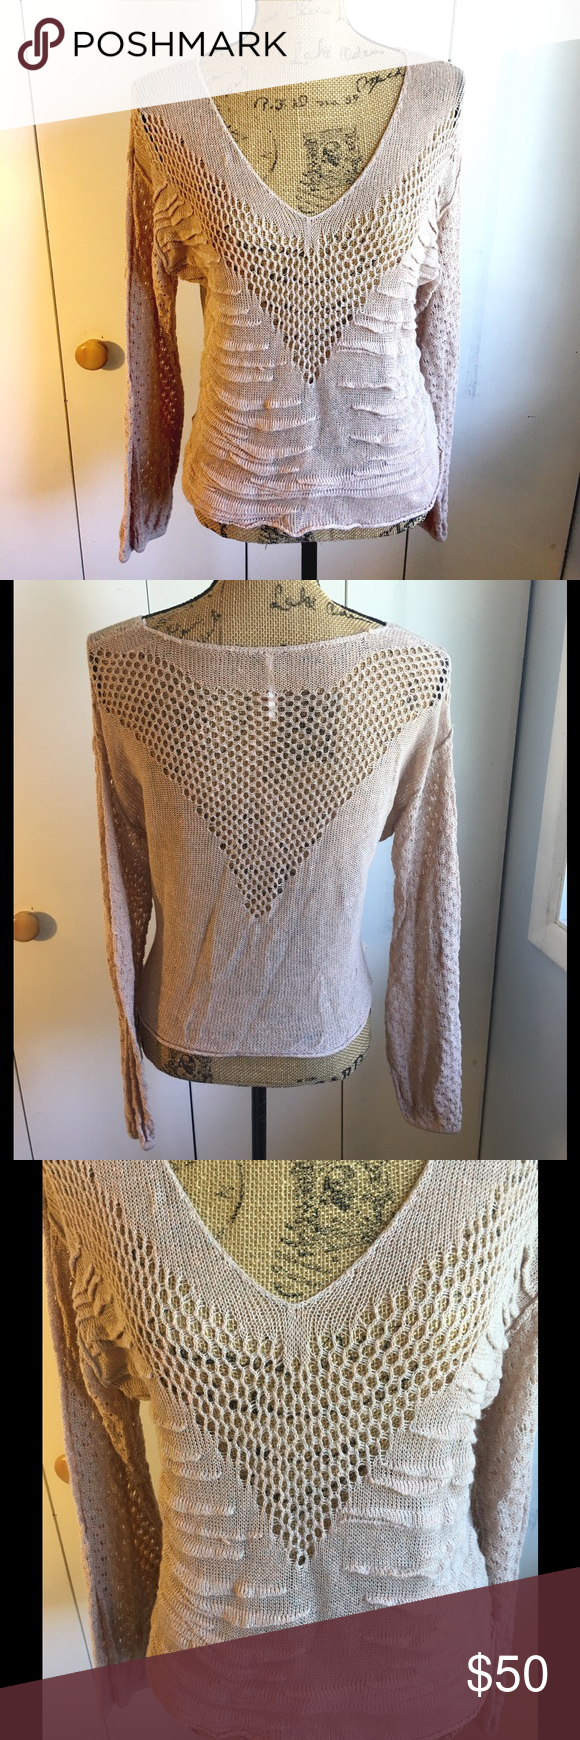 ✨FREE PEOPLE SWEATER✨ Beautiful cream FREE PEOPLE lightweight knit sweater. Vneck. Size medium. 56% linen 44% cotton. Shorter in back than front. Very good condition Free People Sweaters